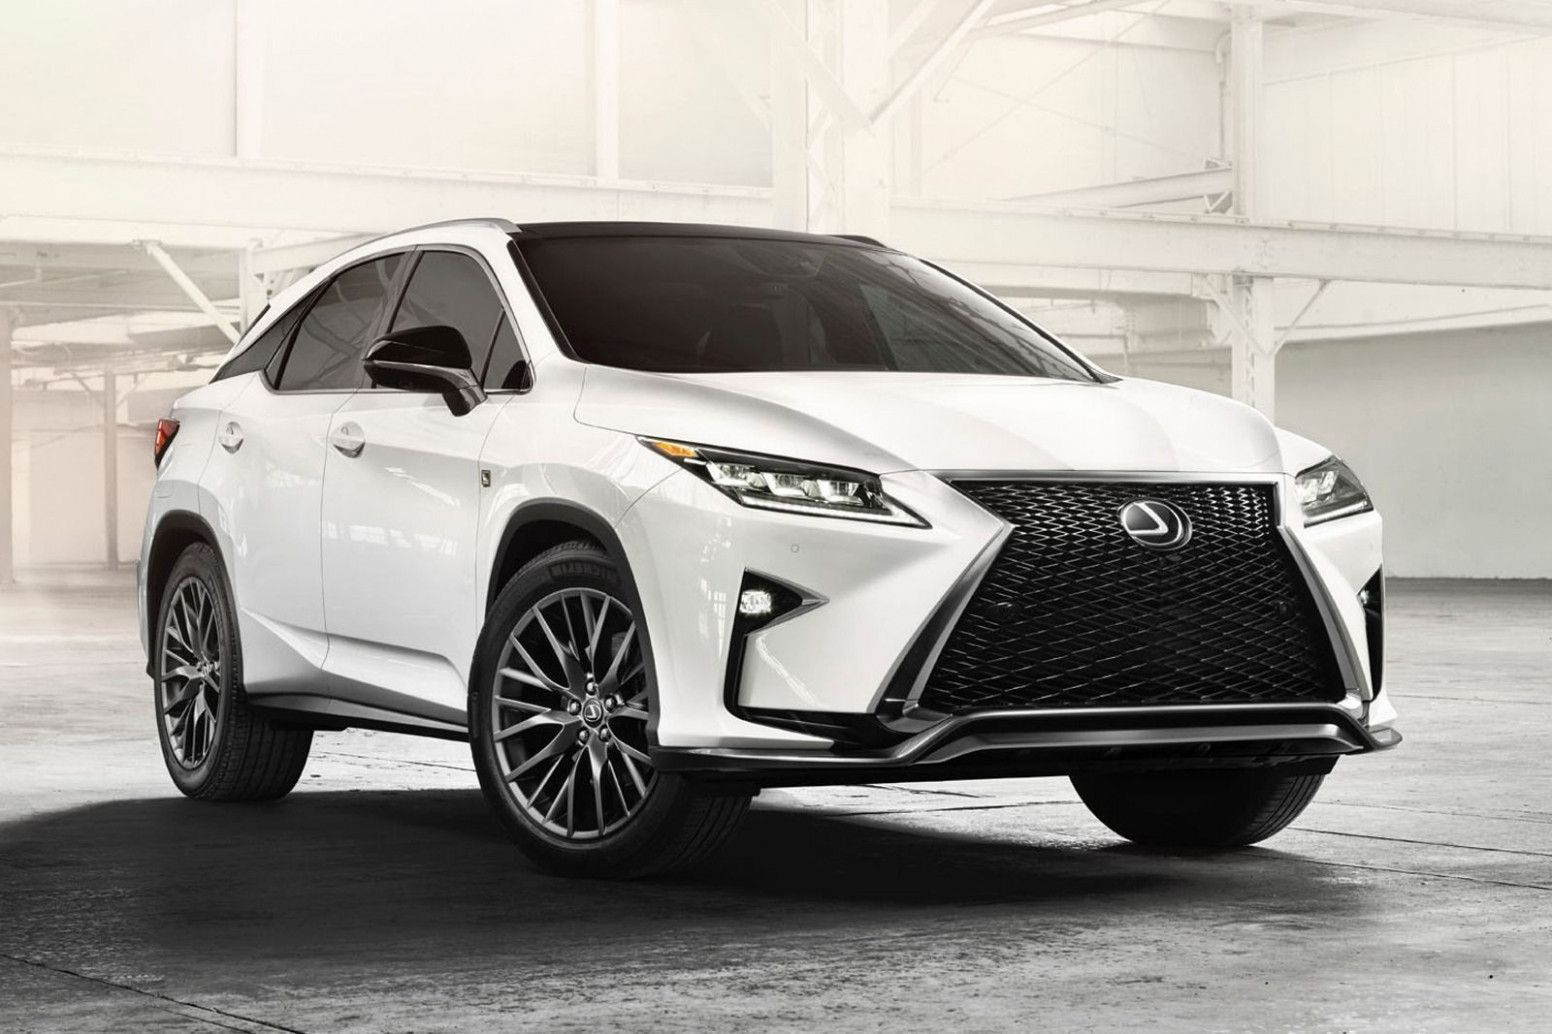 All You Need To Know About 2020 Lexus Lexus models